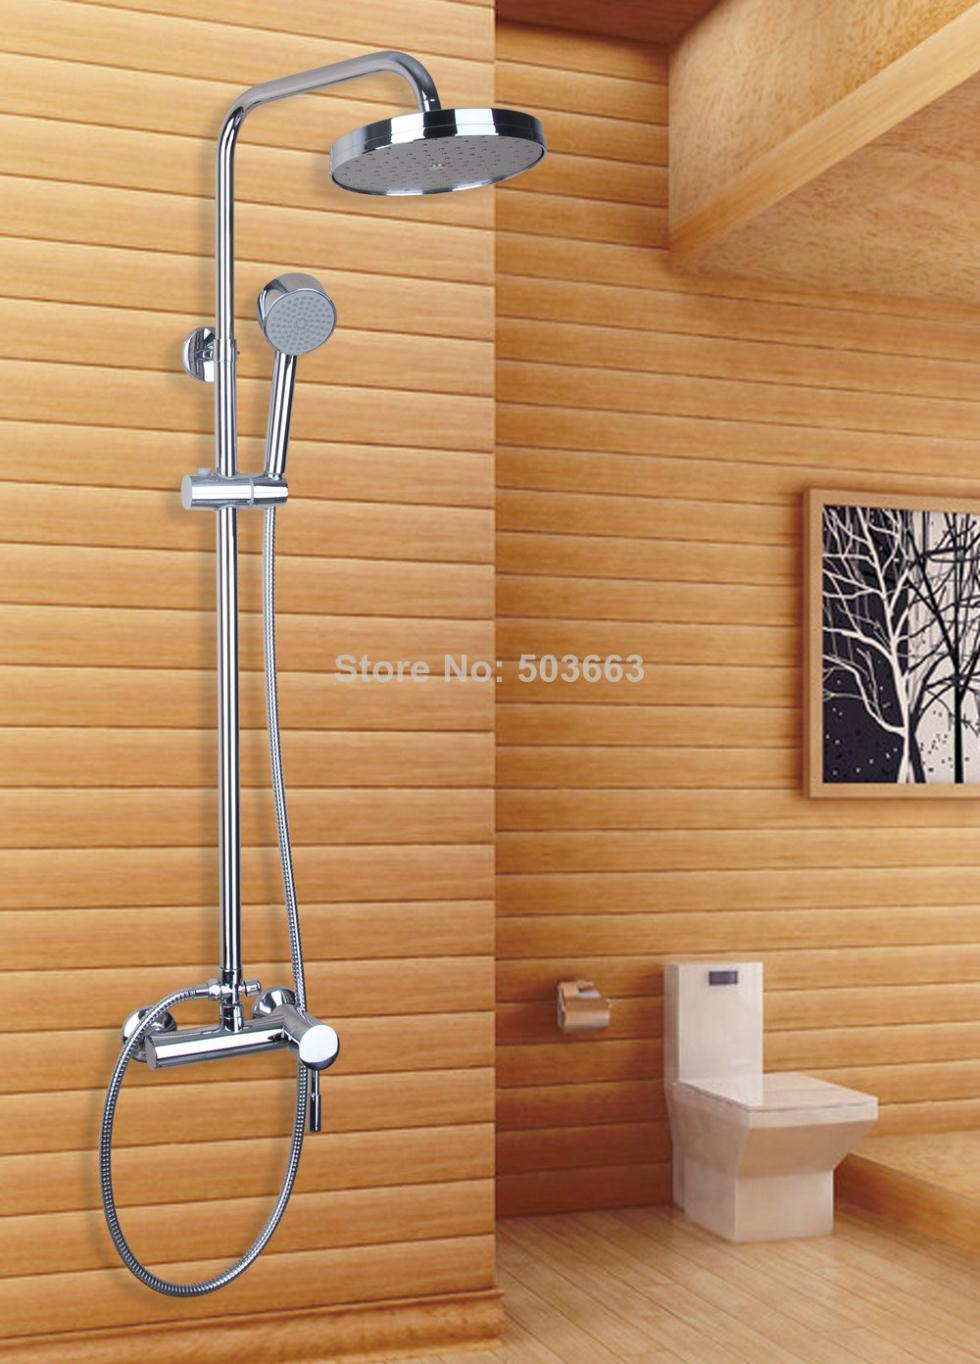 Shower drain furthermore stone look wall tile additionally modern - Shower Drain Furthermore Stone Look Wall Tile Additionally Modern 45